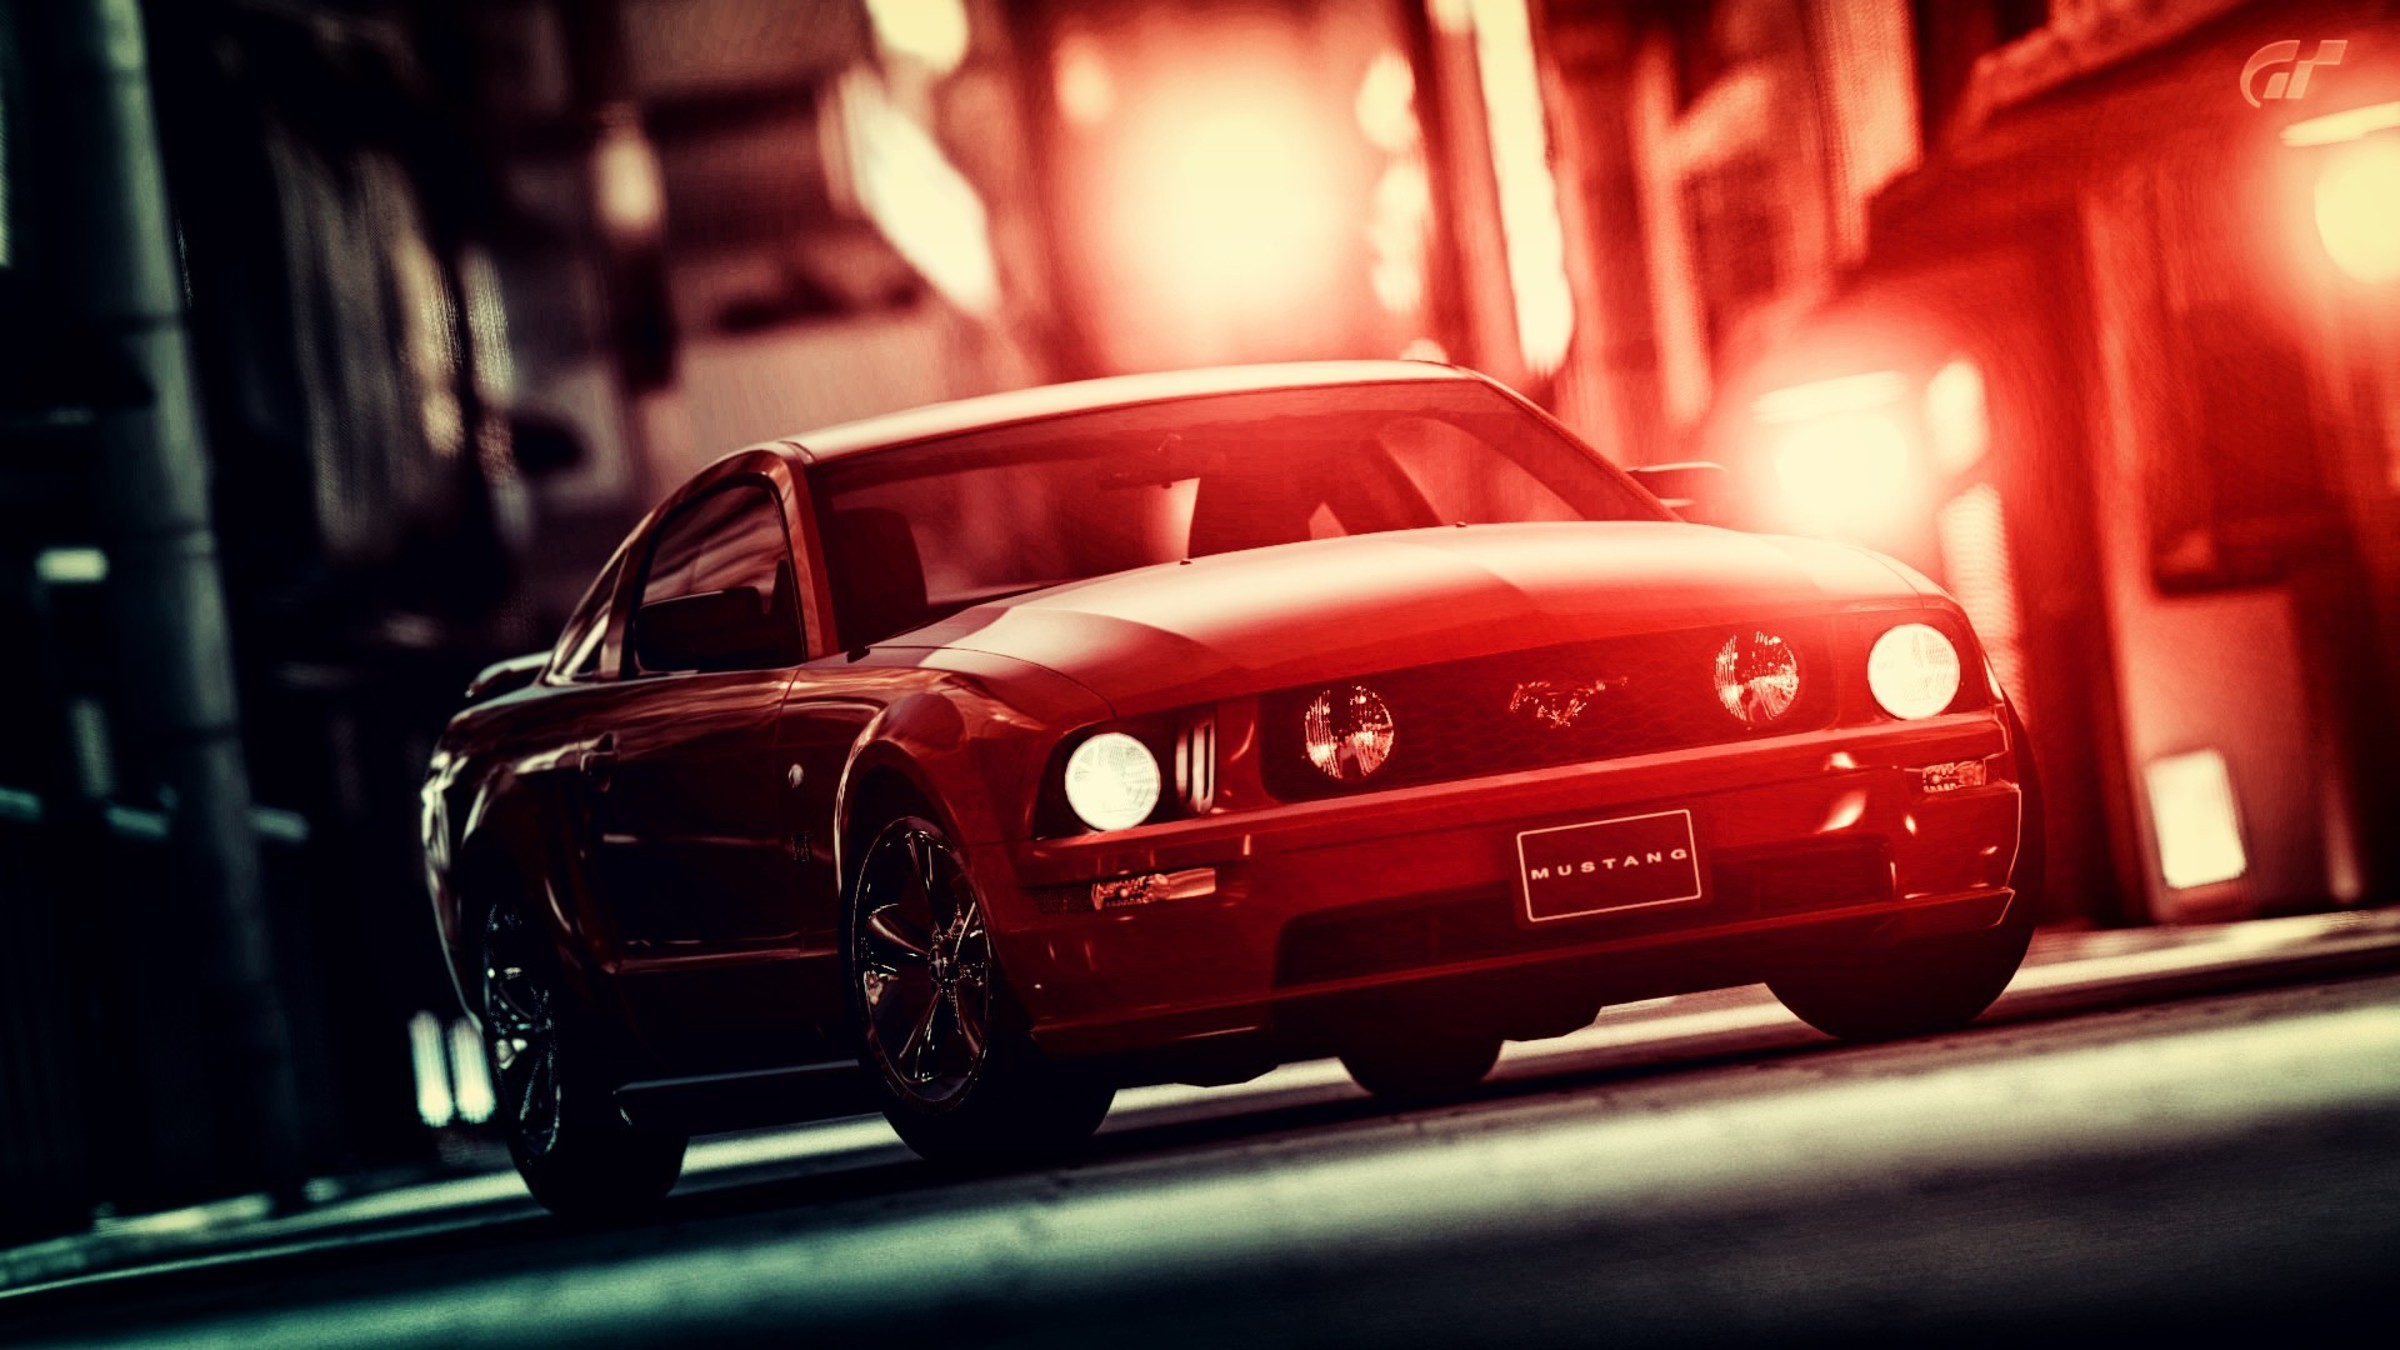 Video Games Cars Ford Mustang Races Wallpaper Allwallpaper In